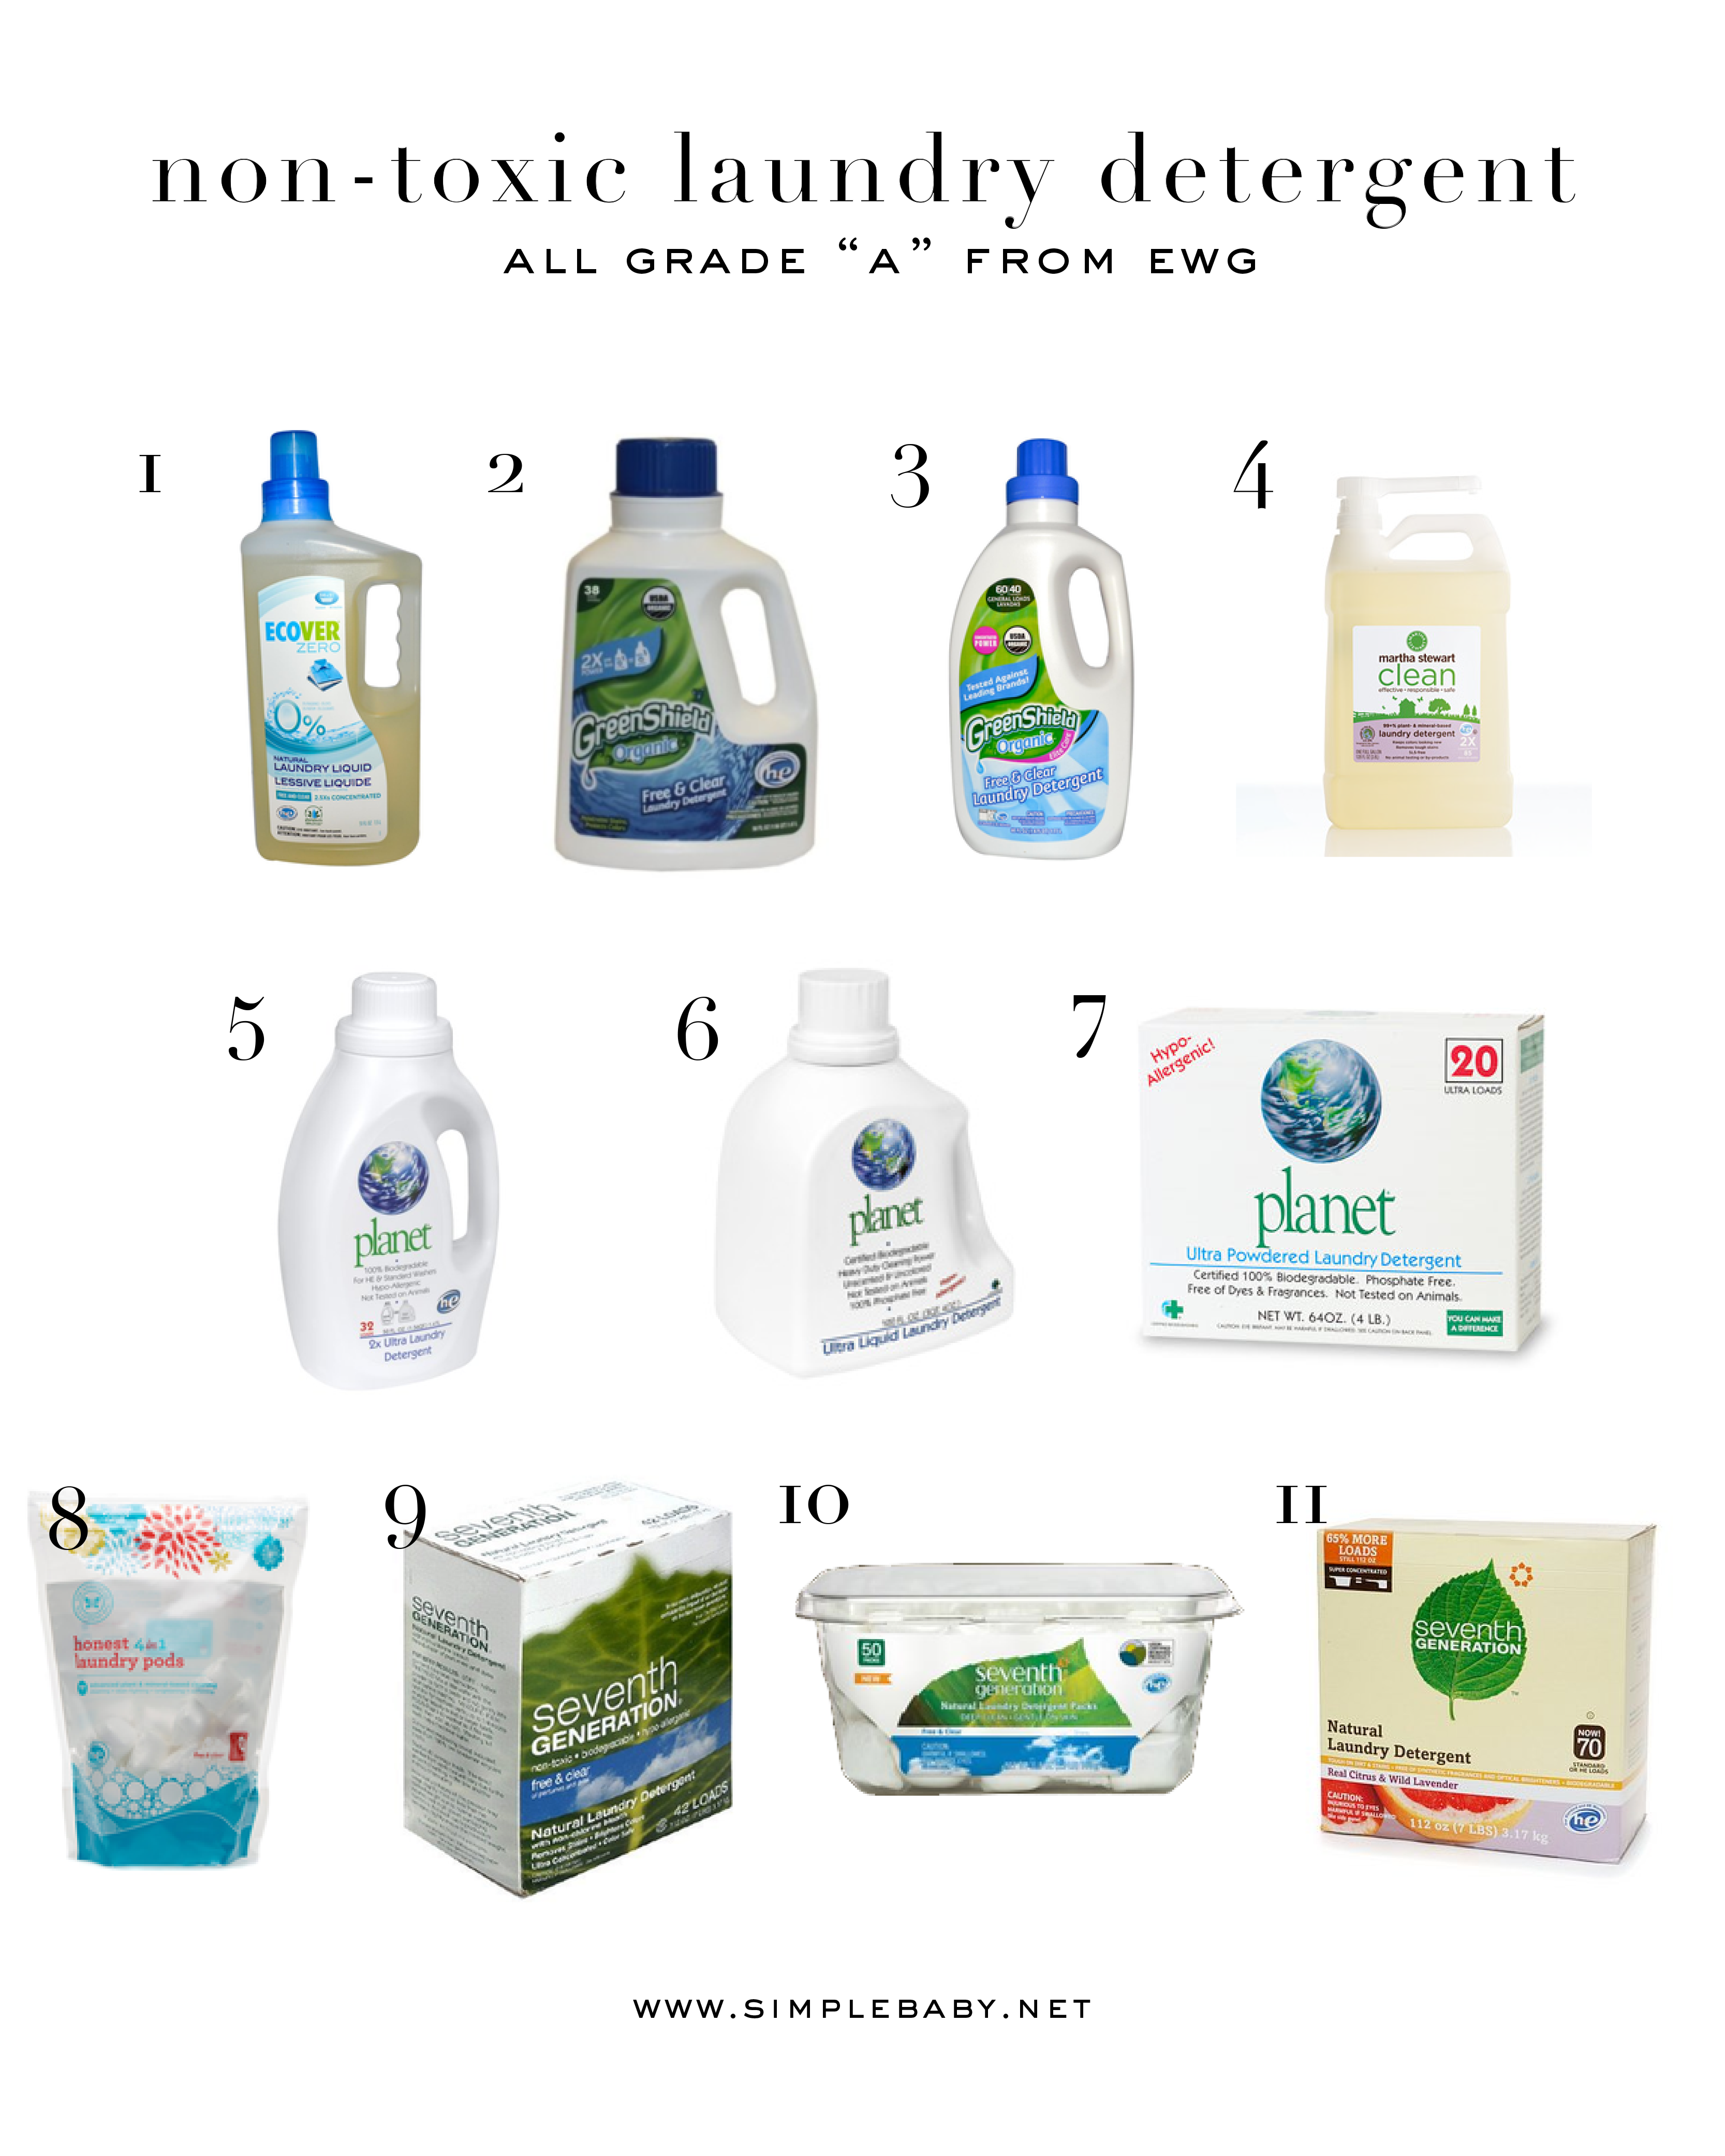 If You Are Looking To Reduce Toxins In Your Home Your Laundry